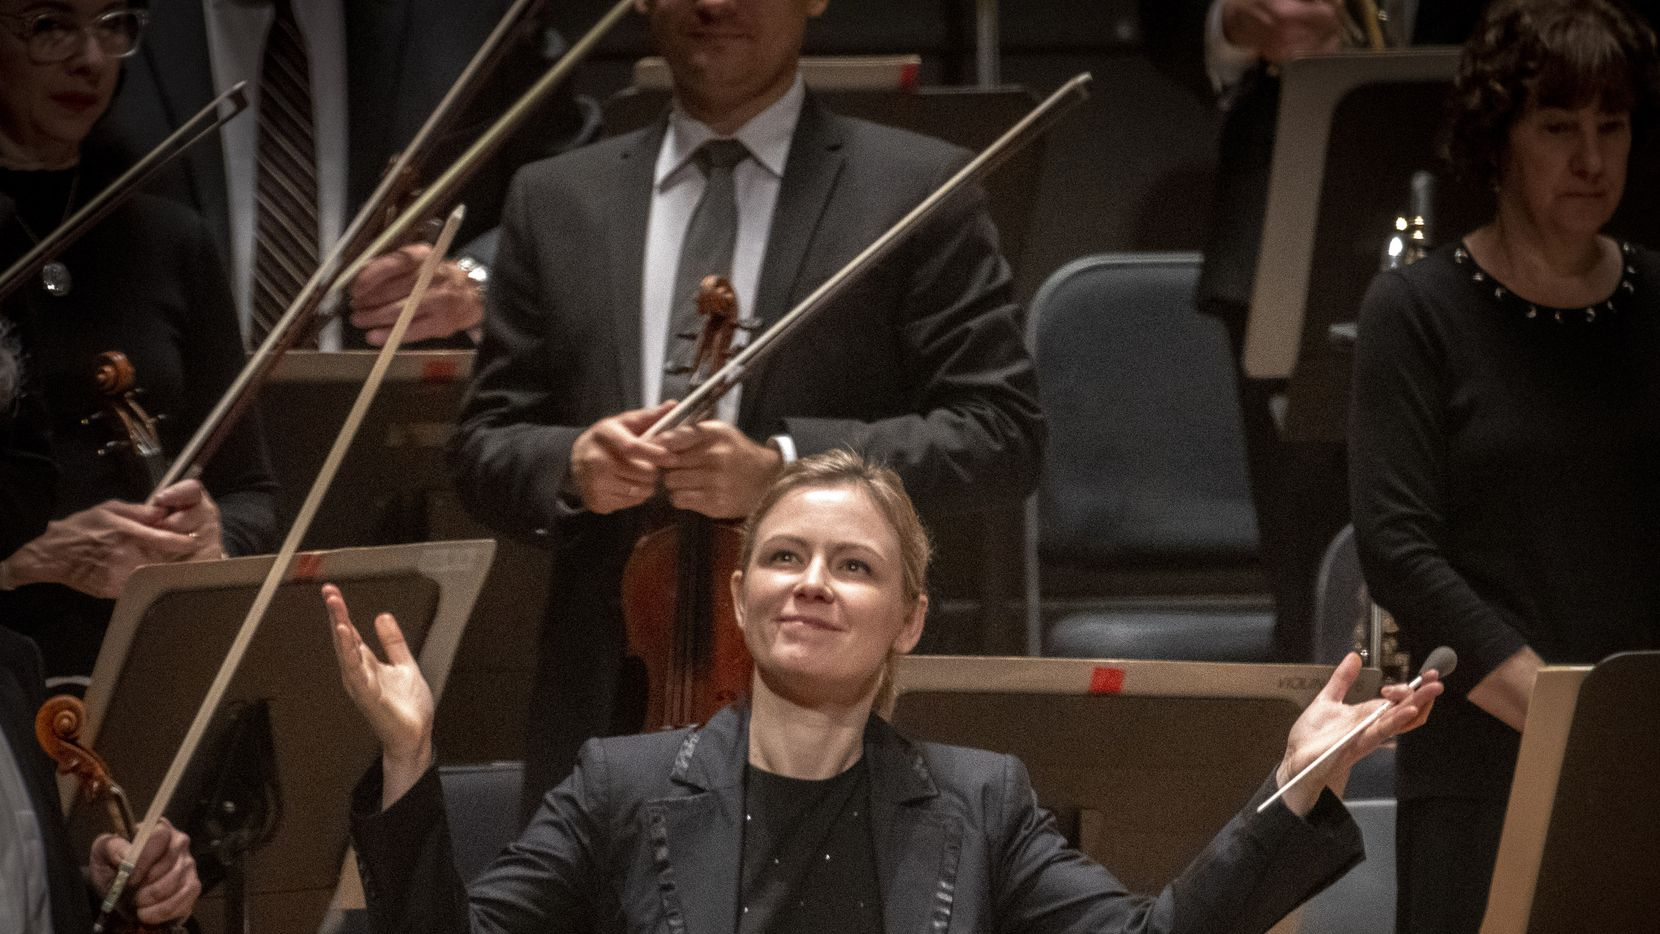 Gemma New, the Dallas Symphony Orchestra's new principal guest conductor greets the audience at the Meyerson Symphony Center on November 8, 2019 in Dallas, Texas.